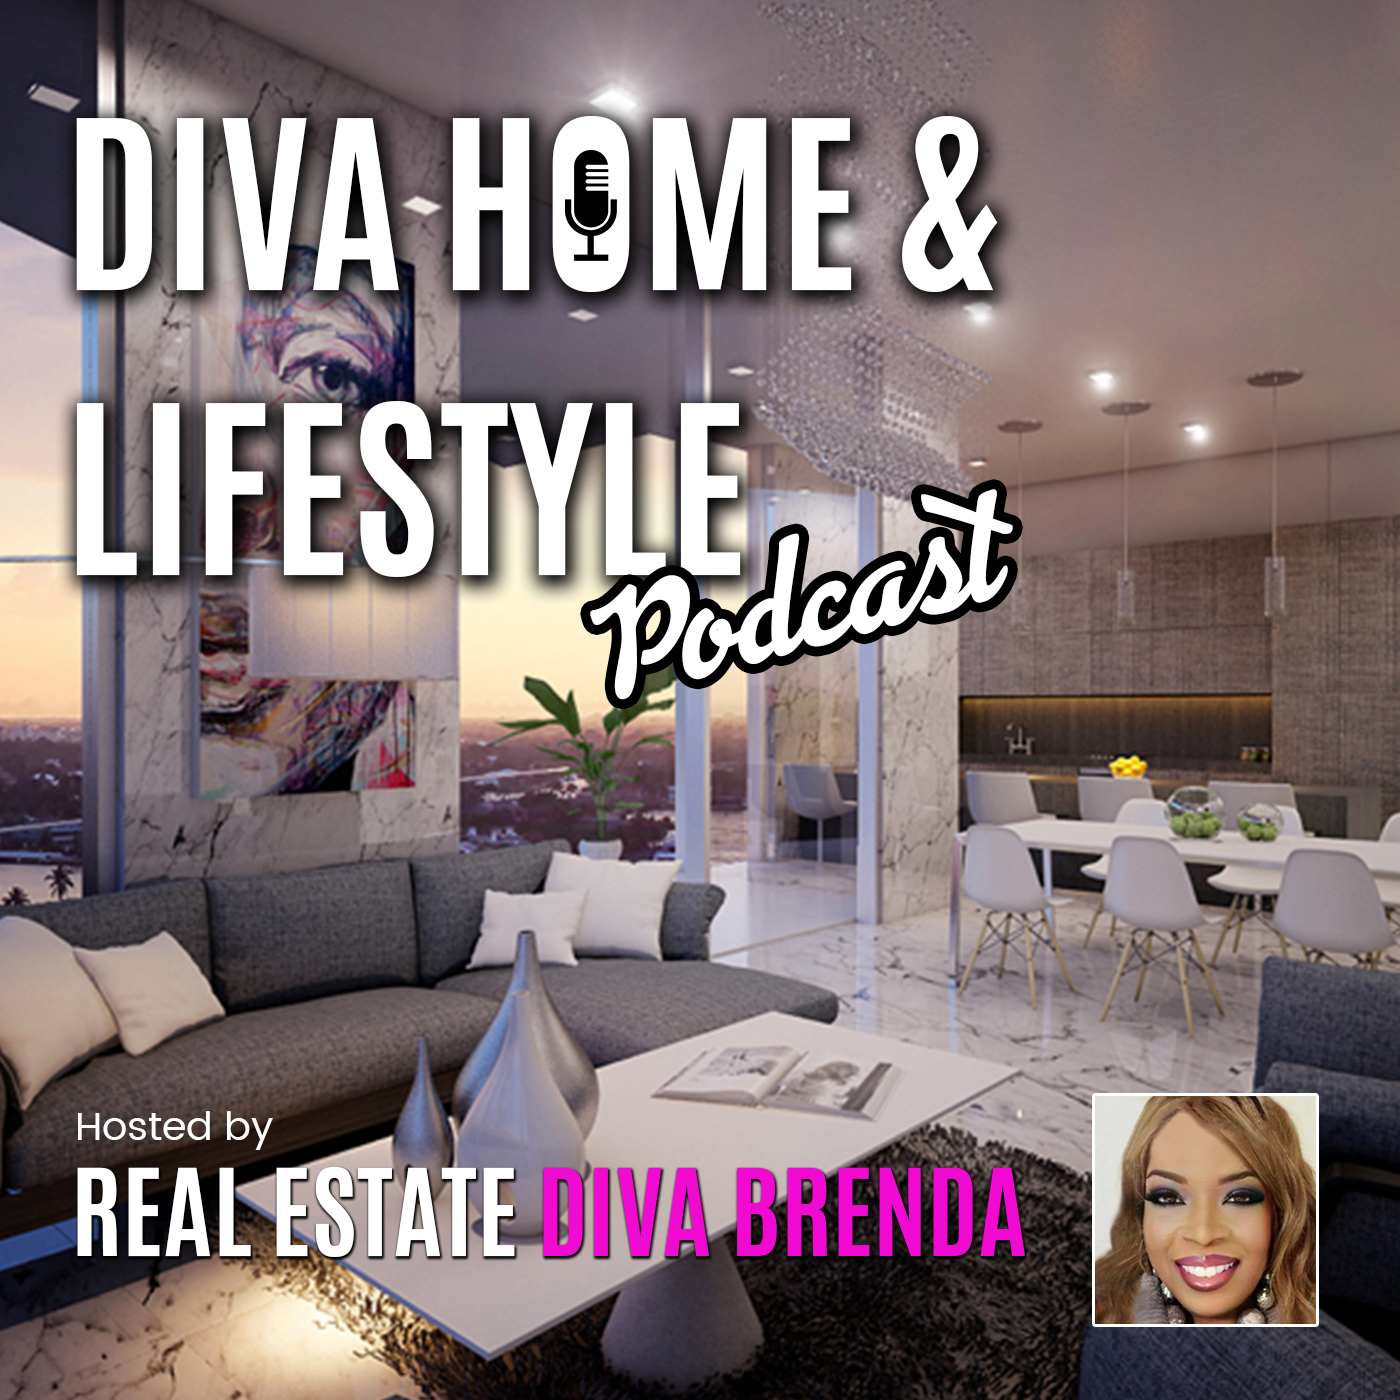 Diva Home & Lifestyle Podcast